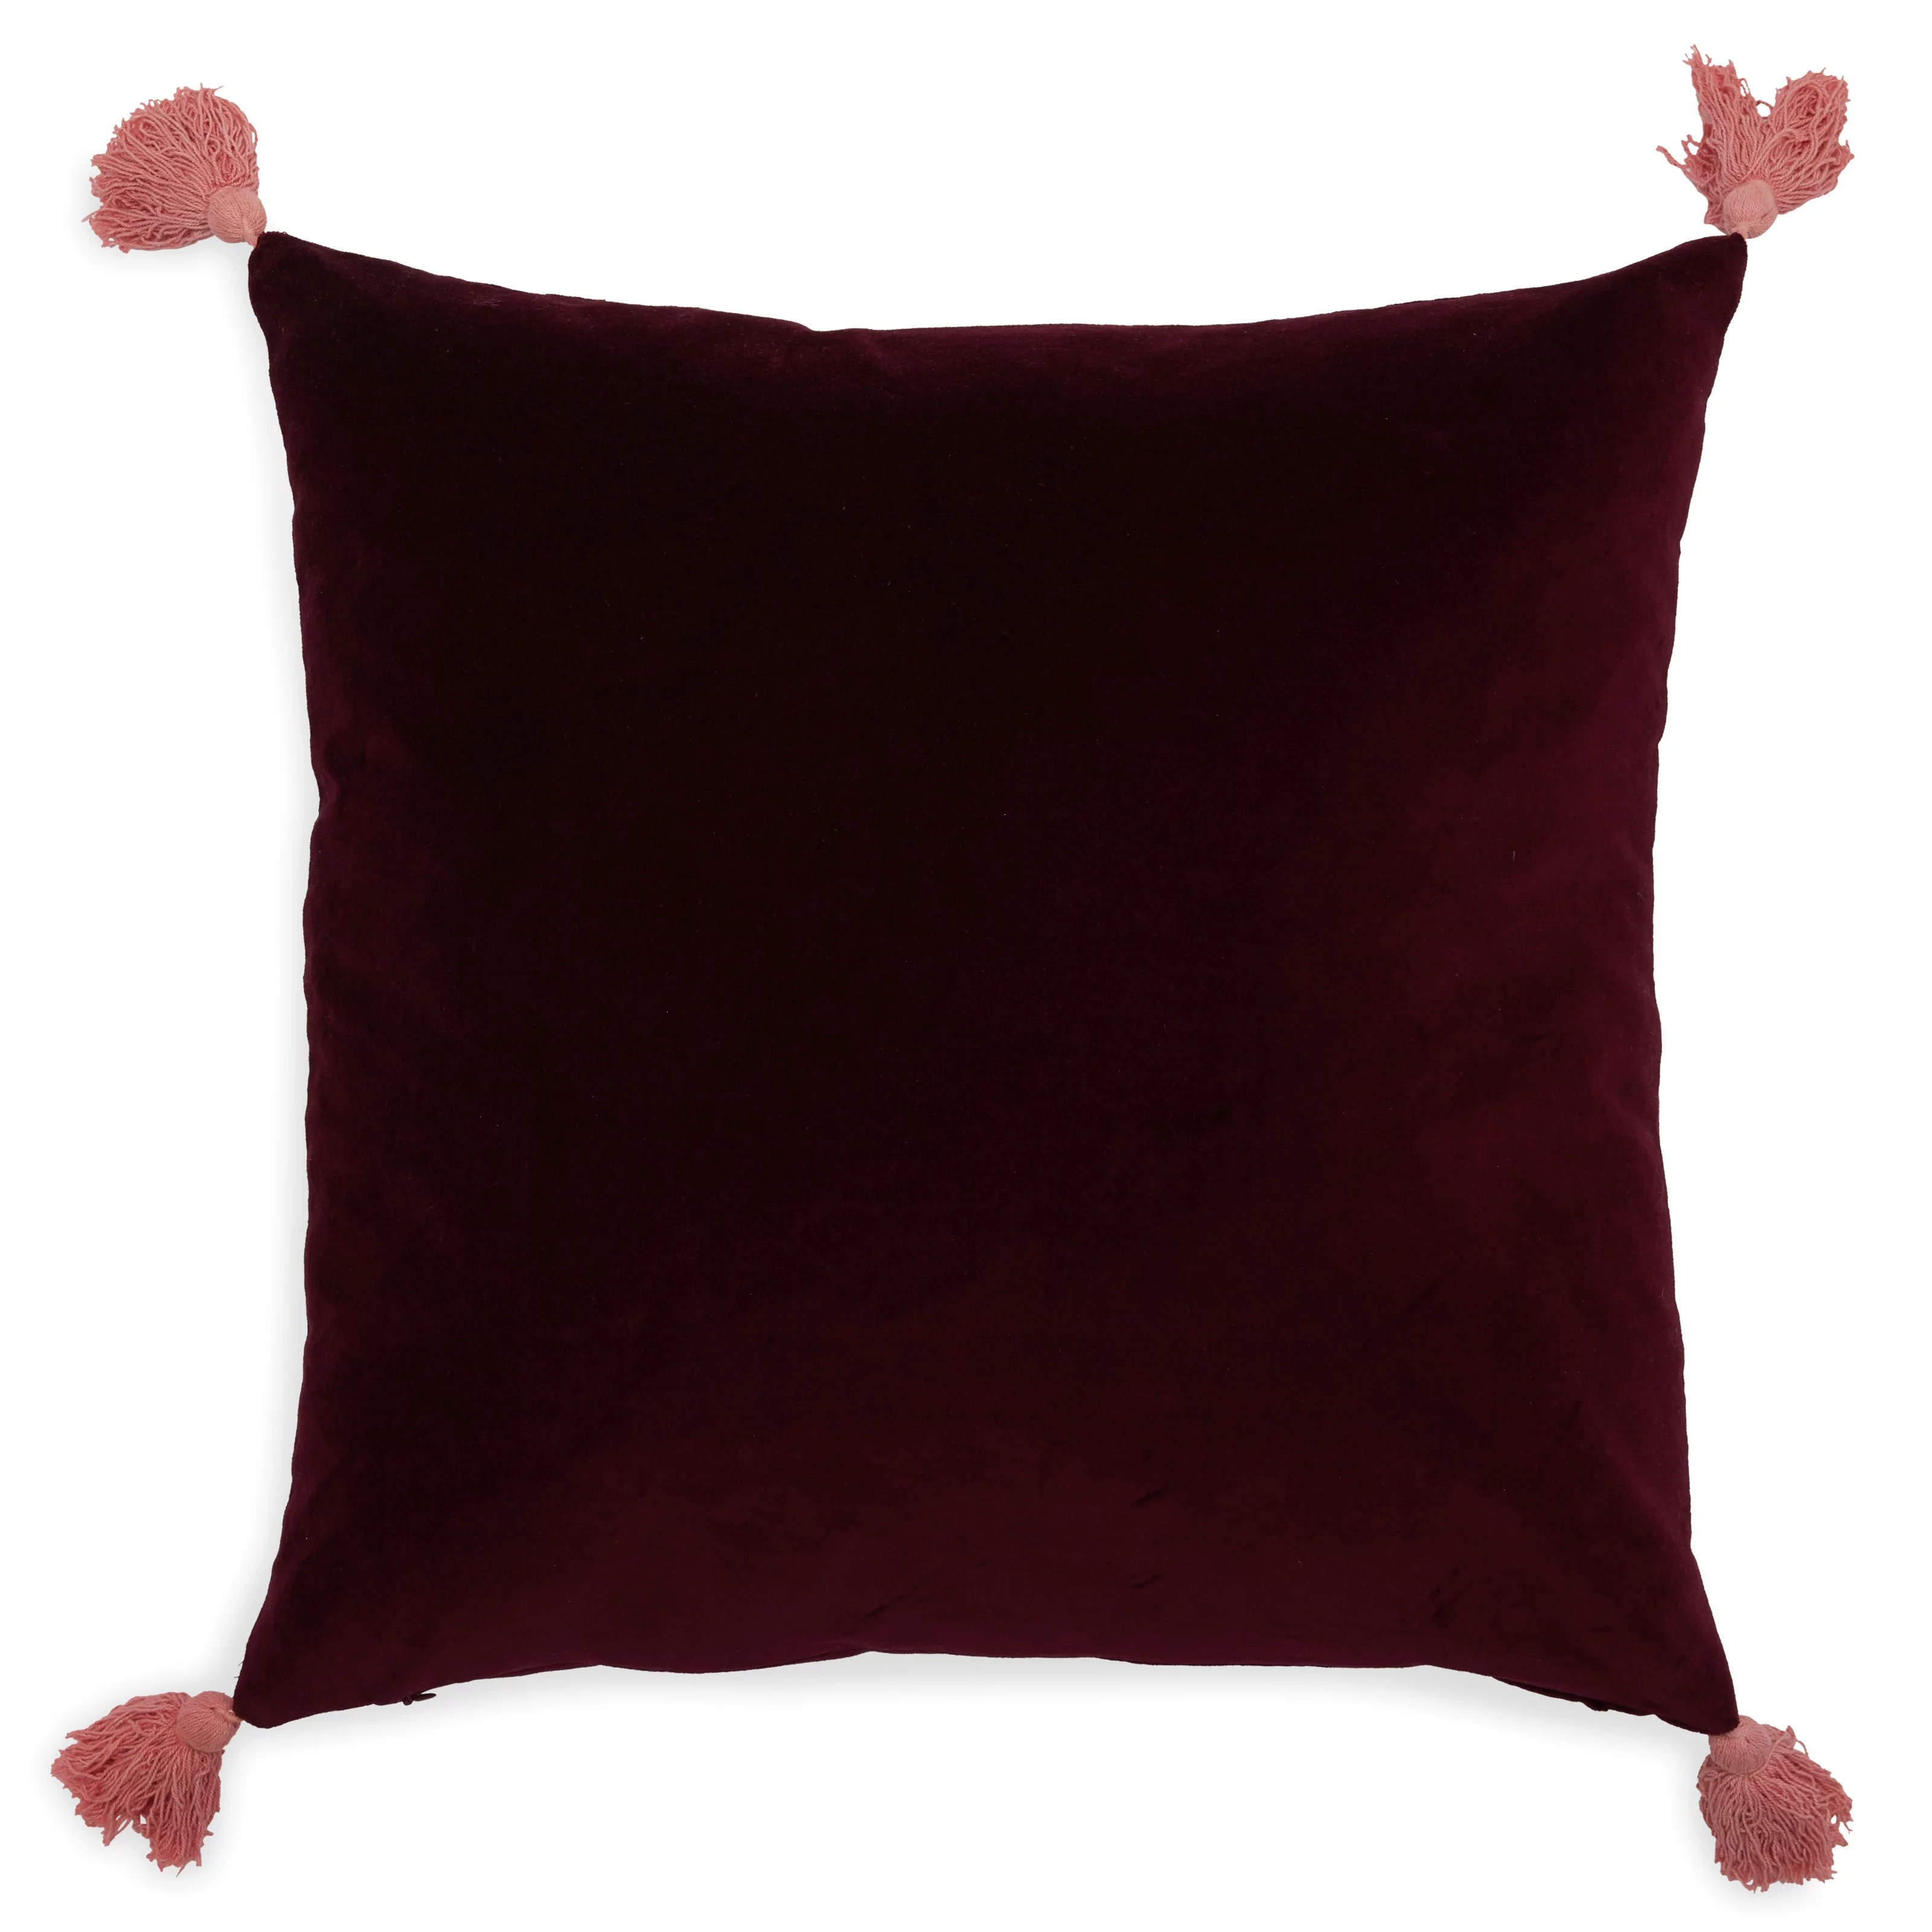 velvet decorative throw pillow with tassels 20x20 by drew barrymore flower home